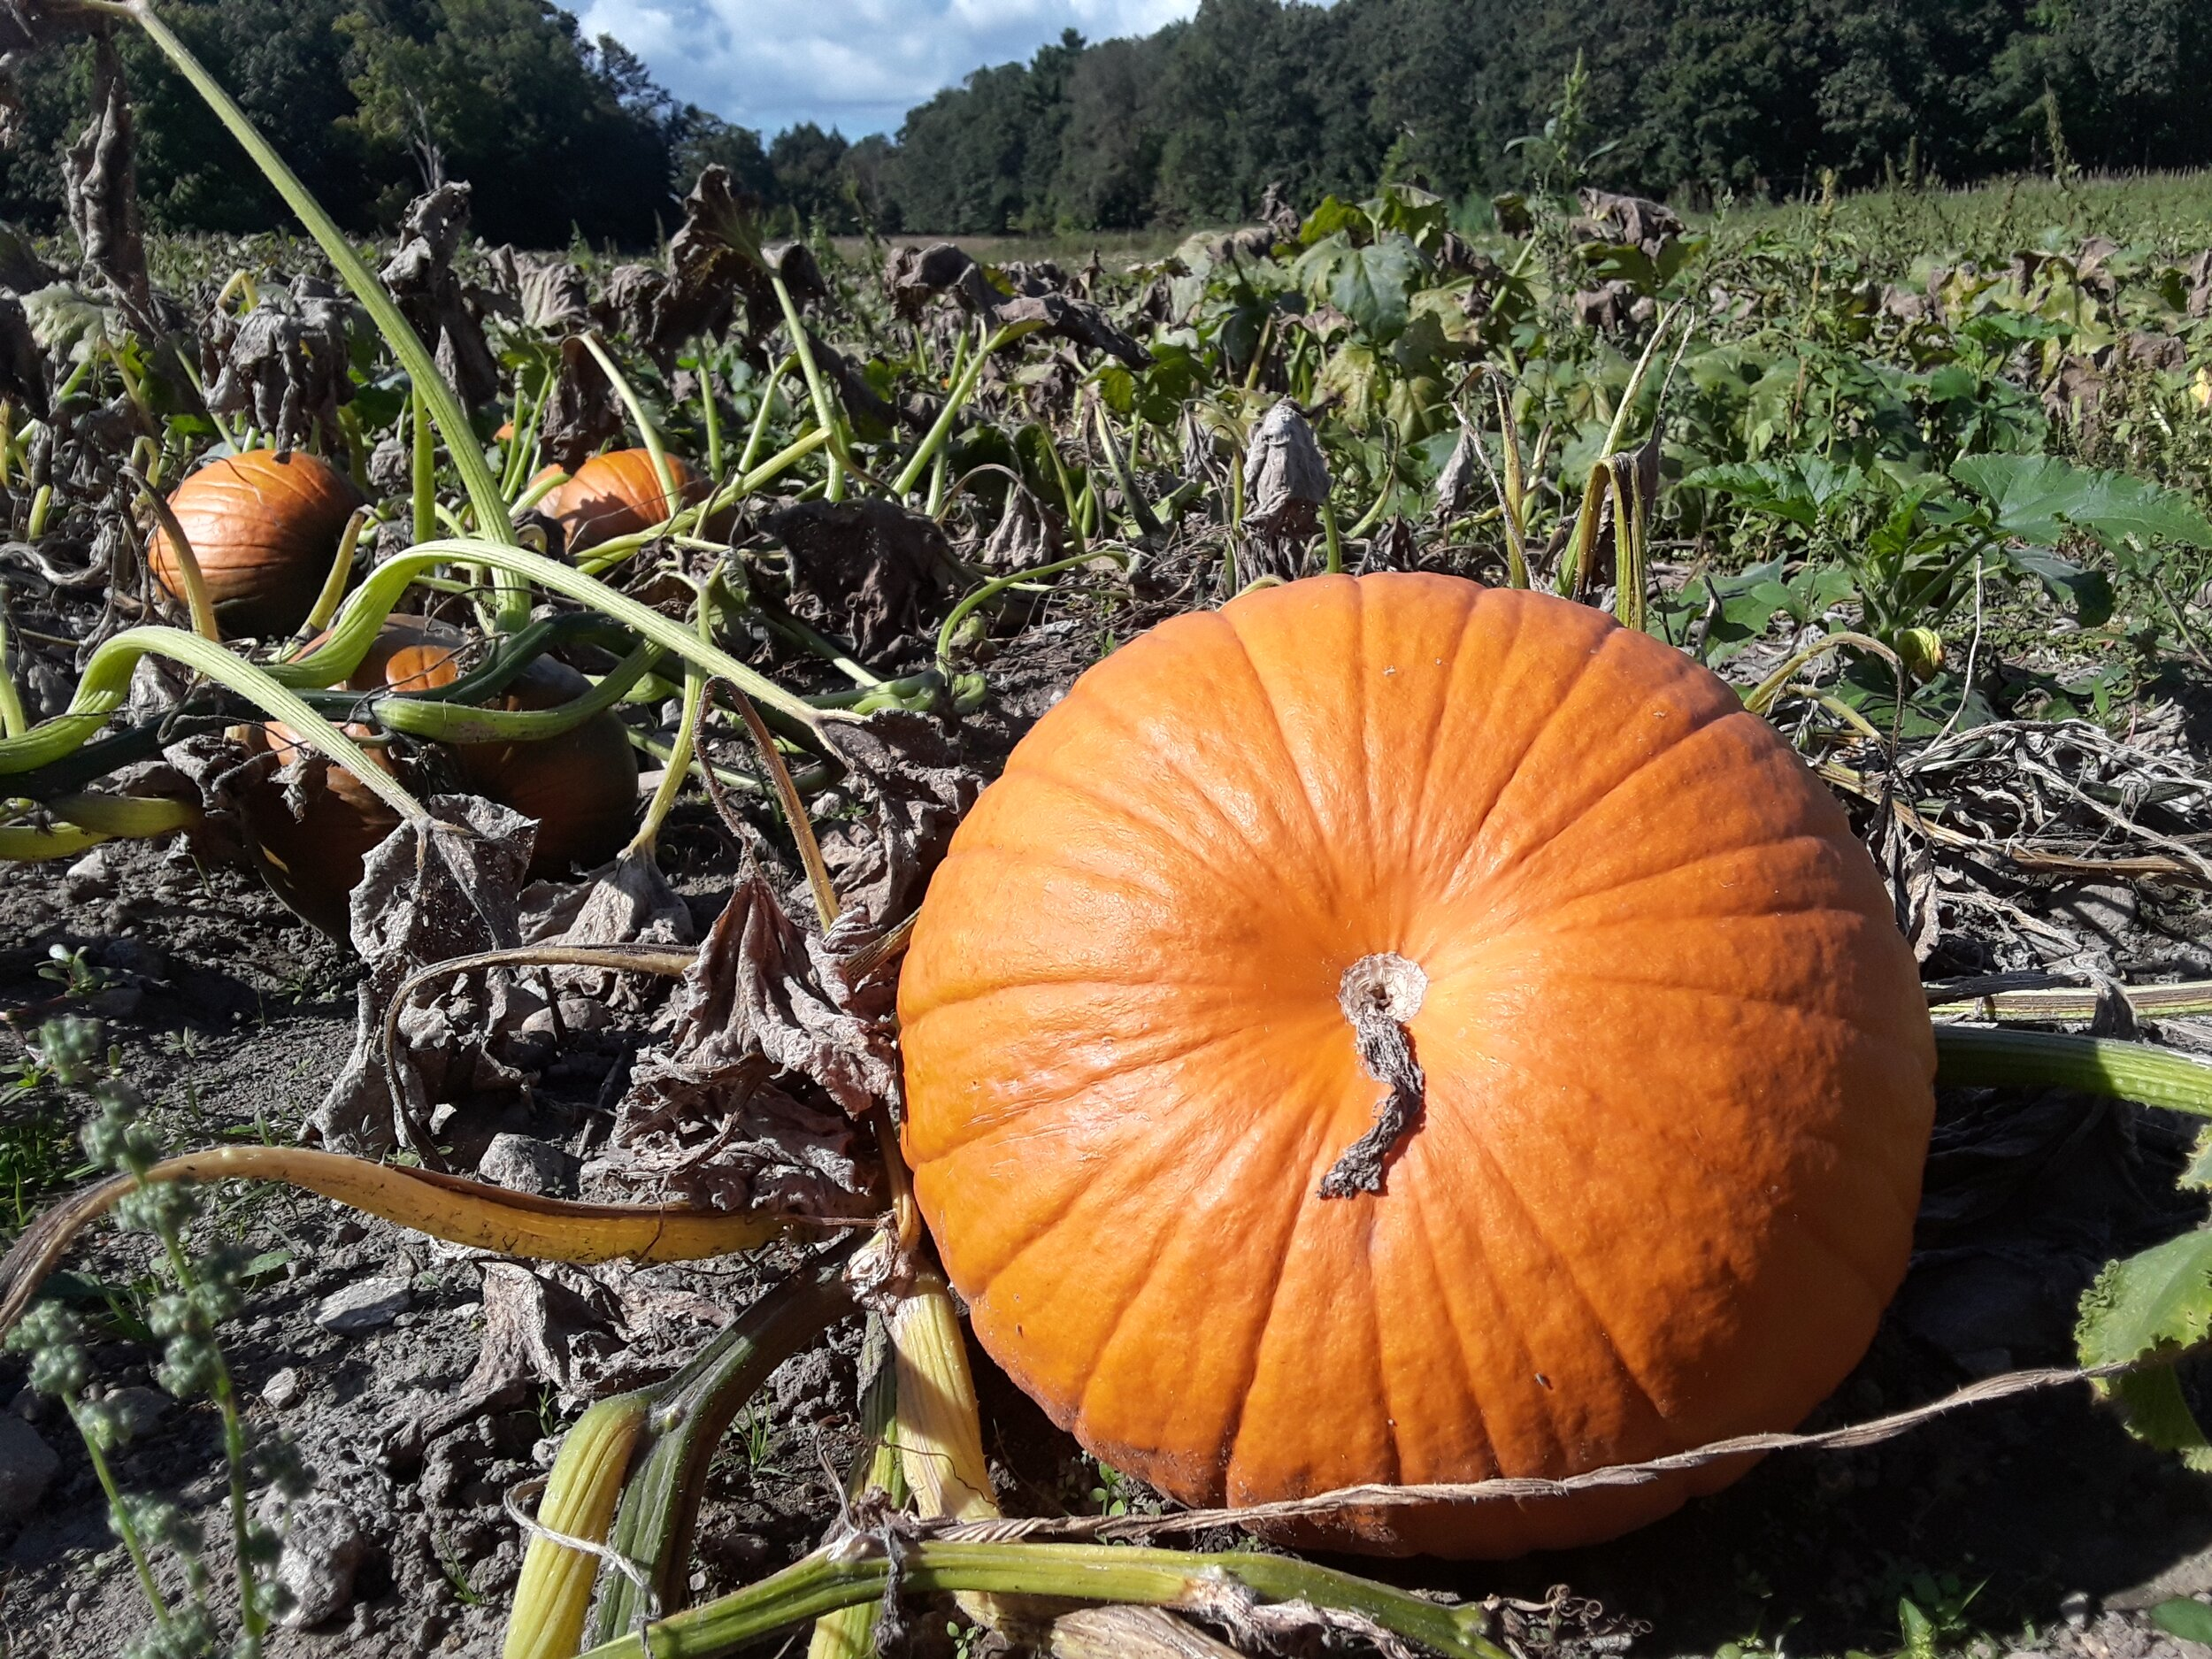 A pumpkin ready for harvest